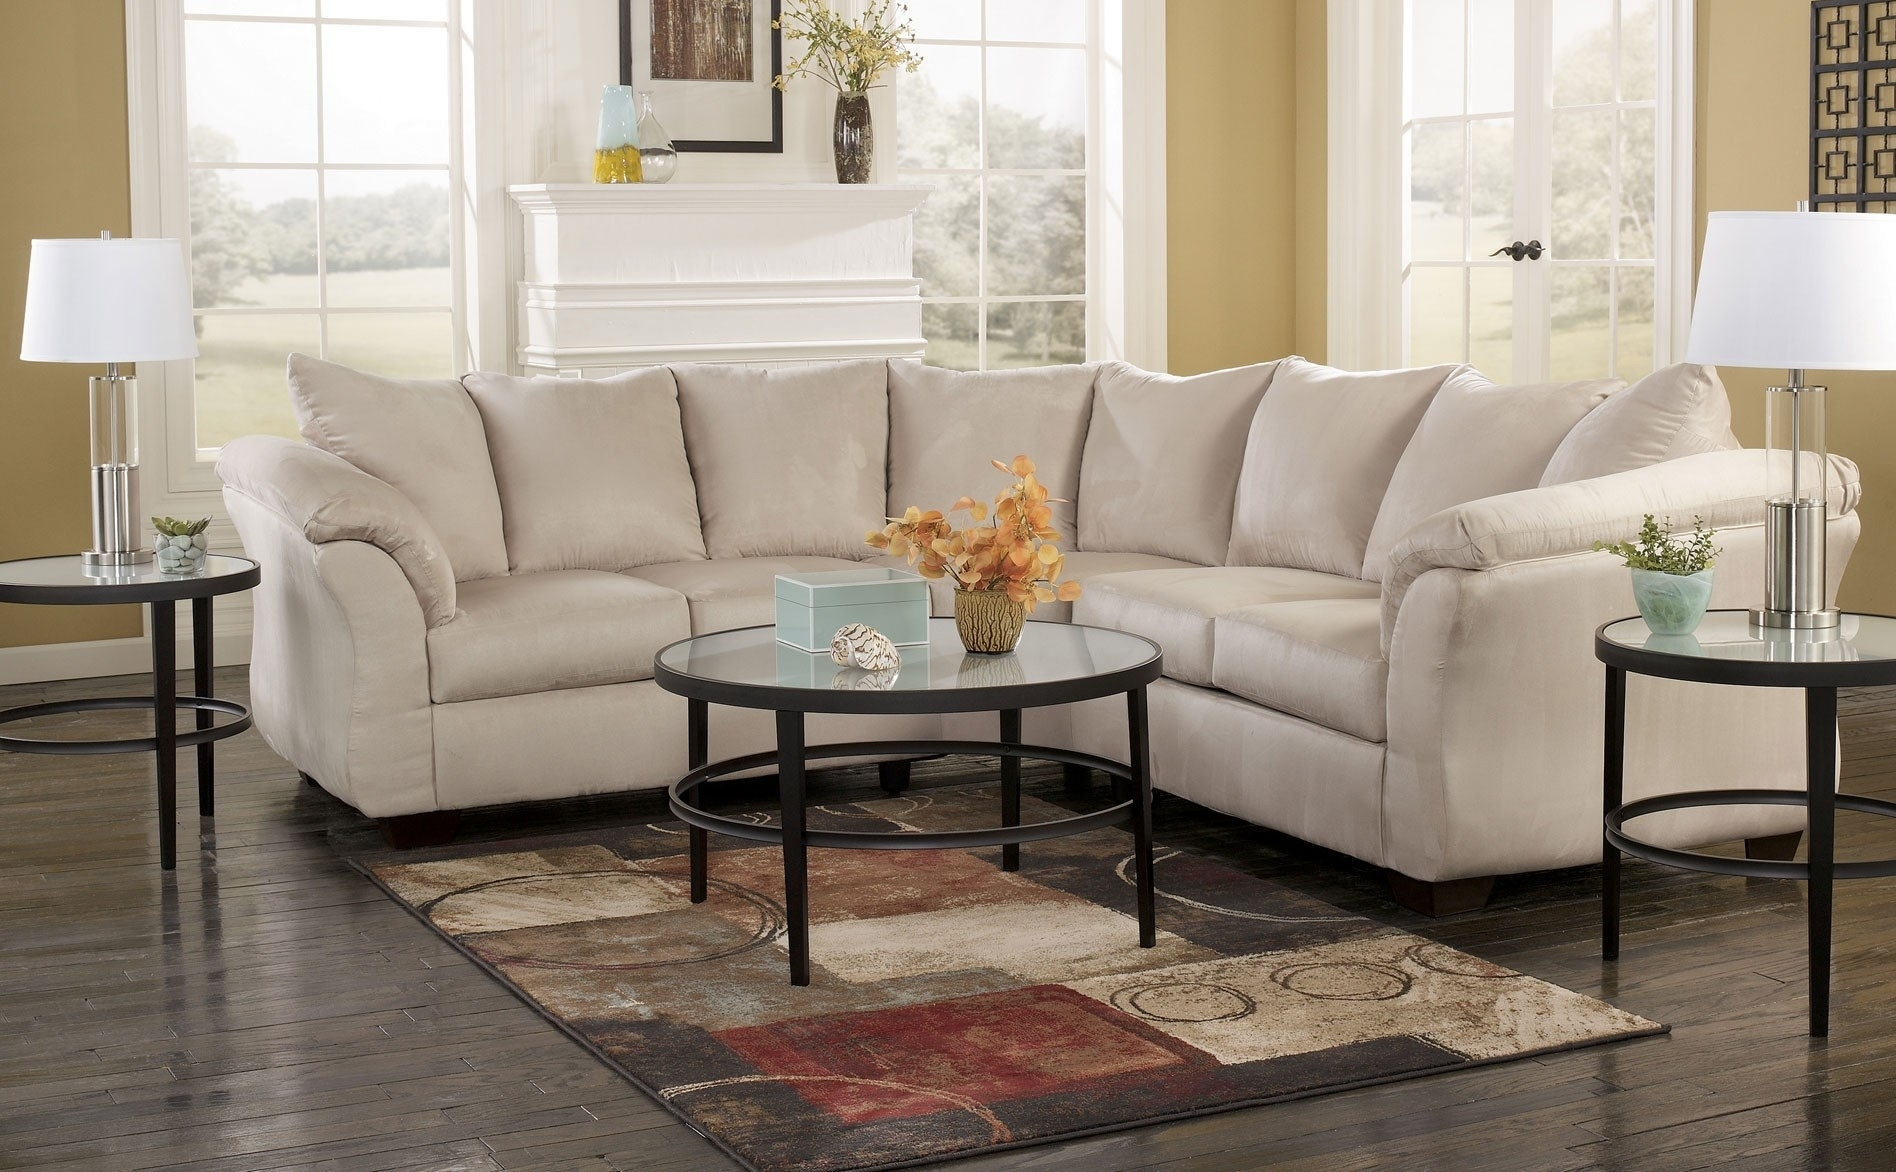 Furniture Inspiring Cheap Sectional Sofas For Living Room Home Ideas Throughout Mathis Brothers Sectional Sofas (View 7 of 10)